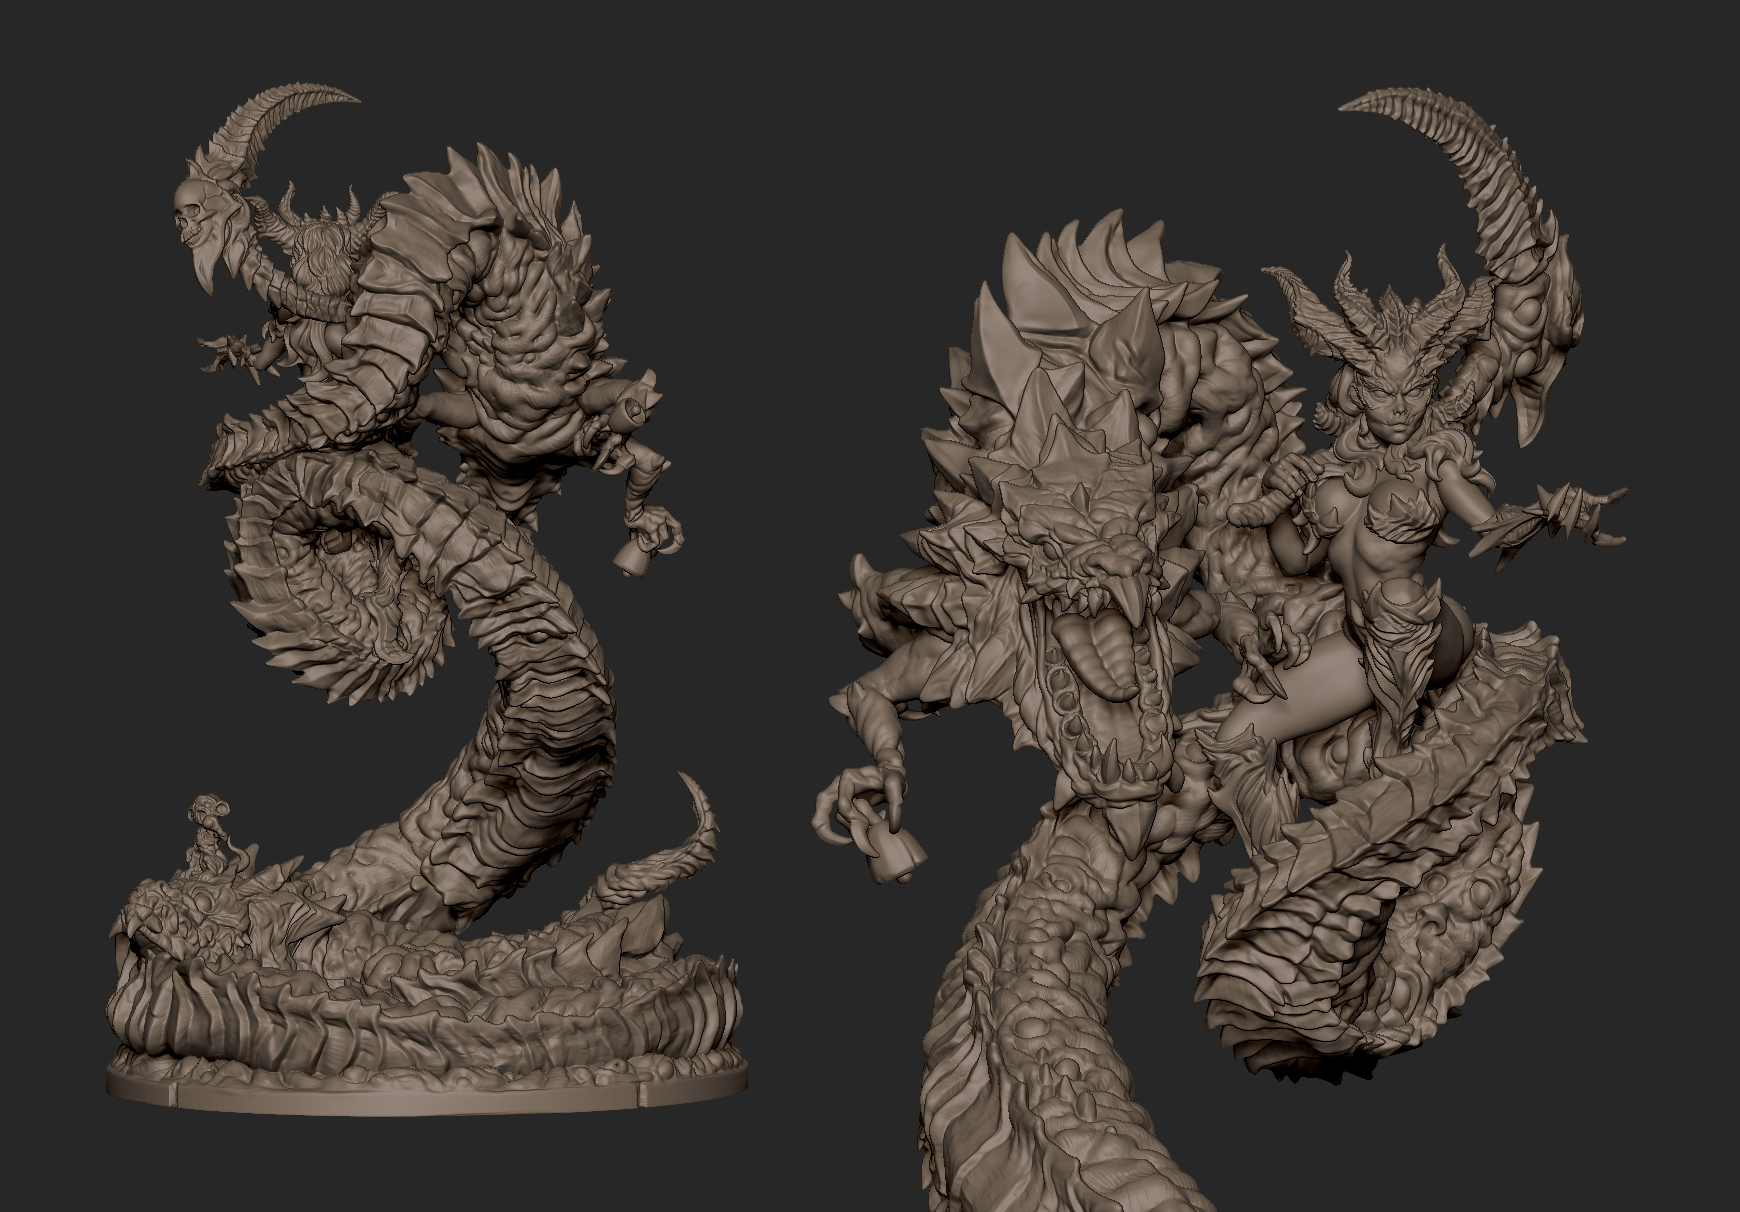 2020.10.31  DeathGift first monster Dragon Queen 100mm stand 155mm height all Dragon link can be attached with magnets. Can buy from my gumroad or patreon